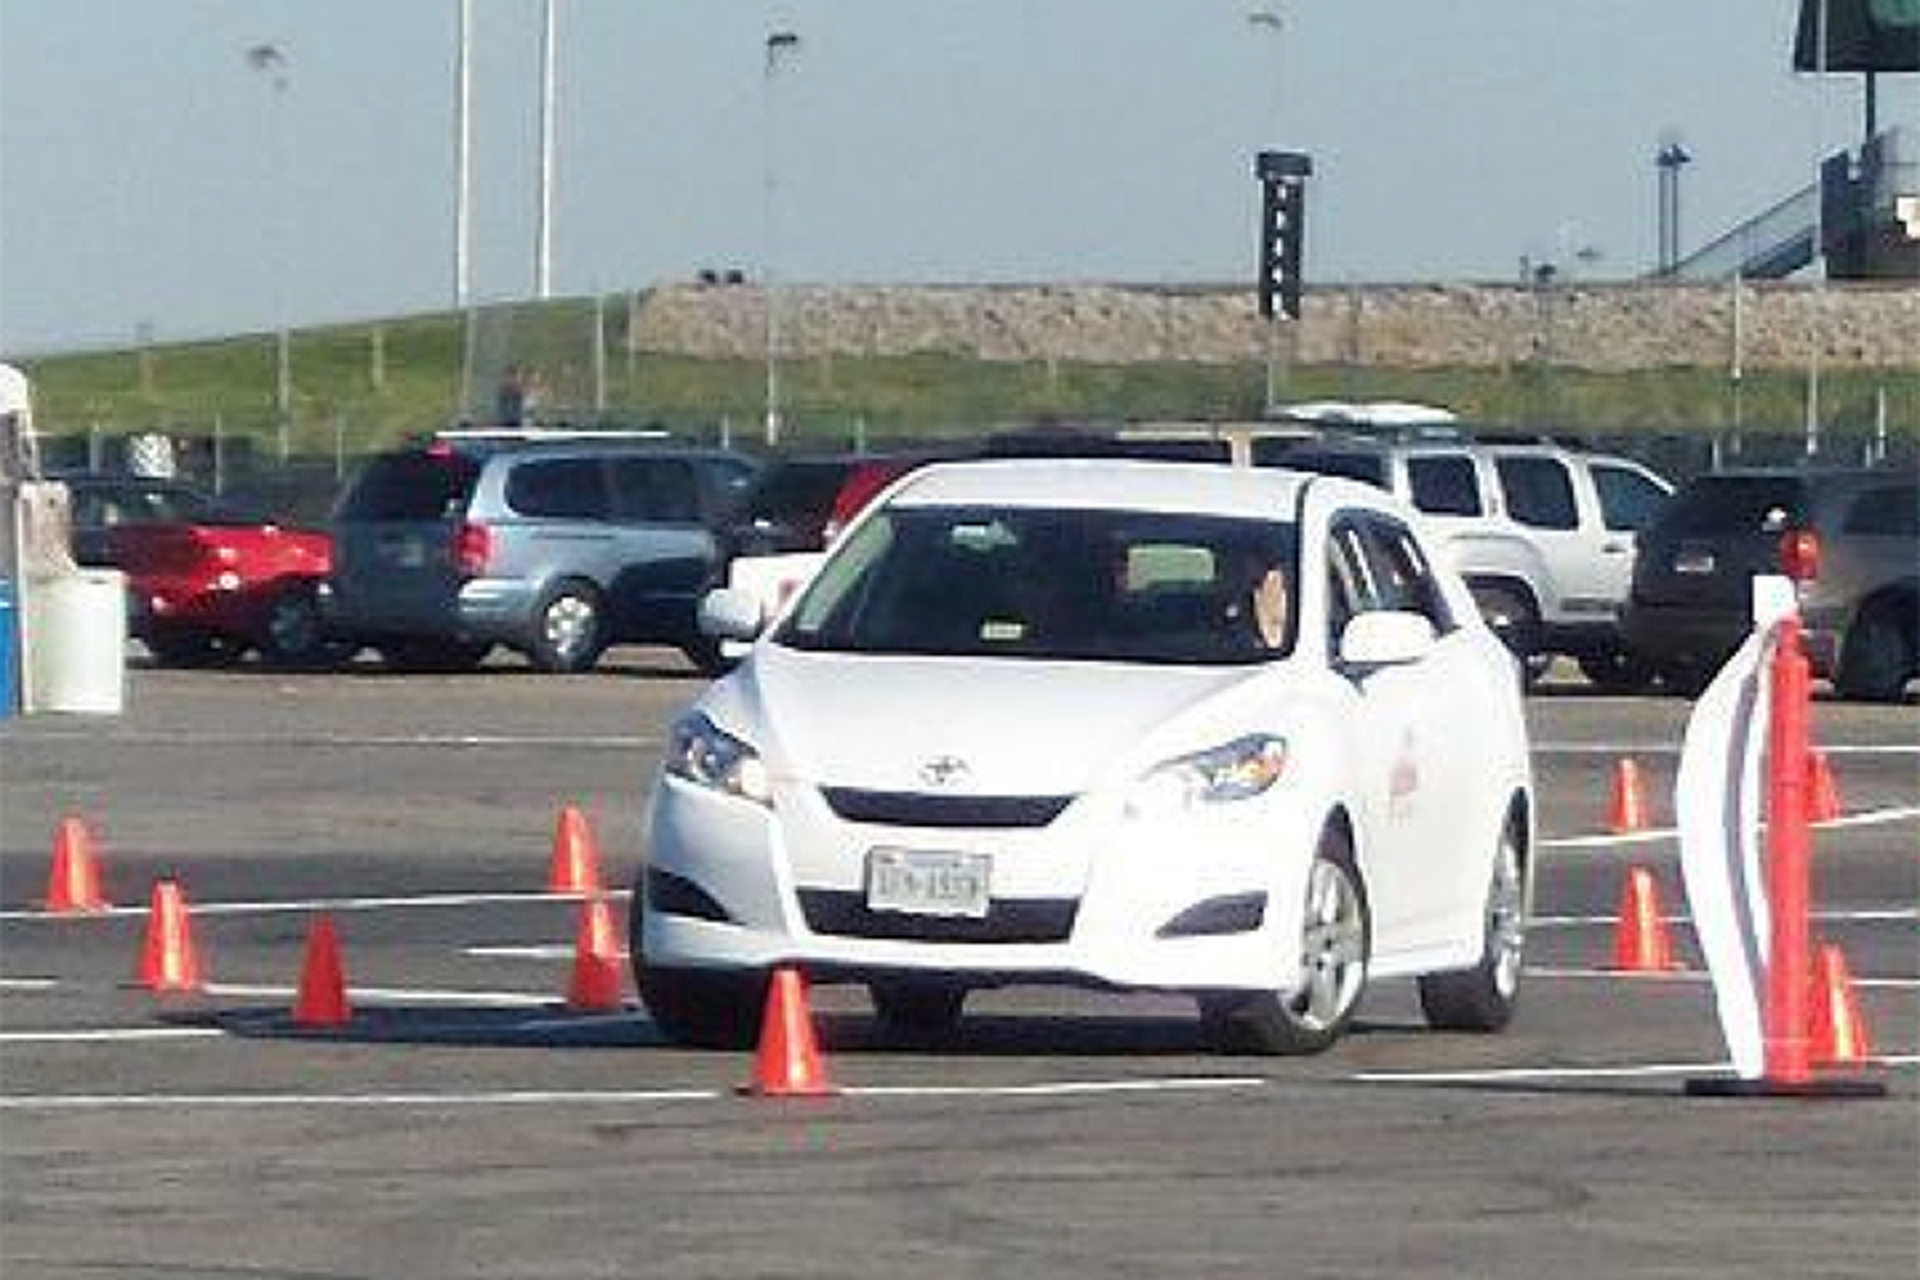 Free Teen Driver Safety Program Could Save Your Kid's Life